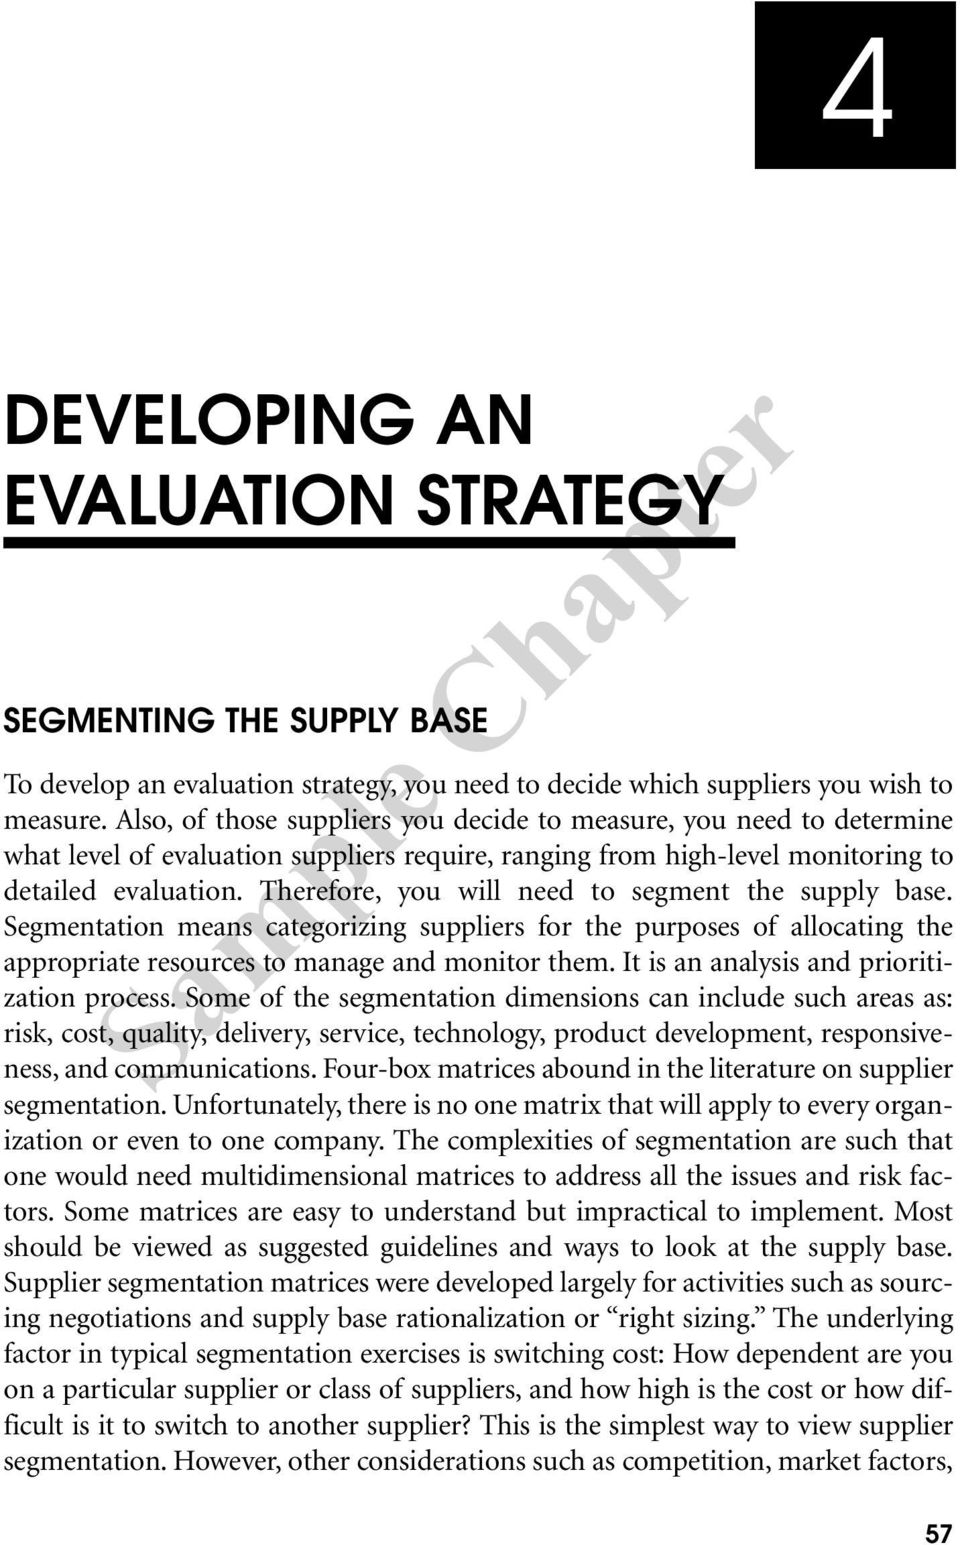 Therefore, you will need to segment the supply base. Segmentation means categorizing suppliers for the purposes of allocating the appropriate resources to manage and monitor them.